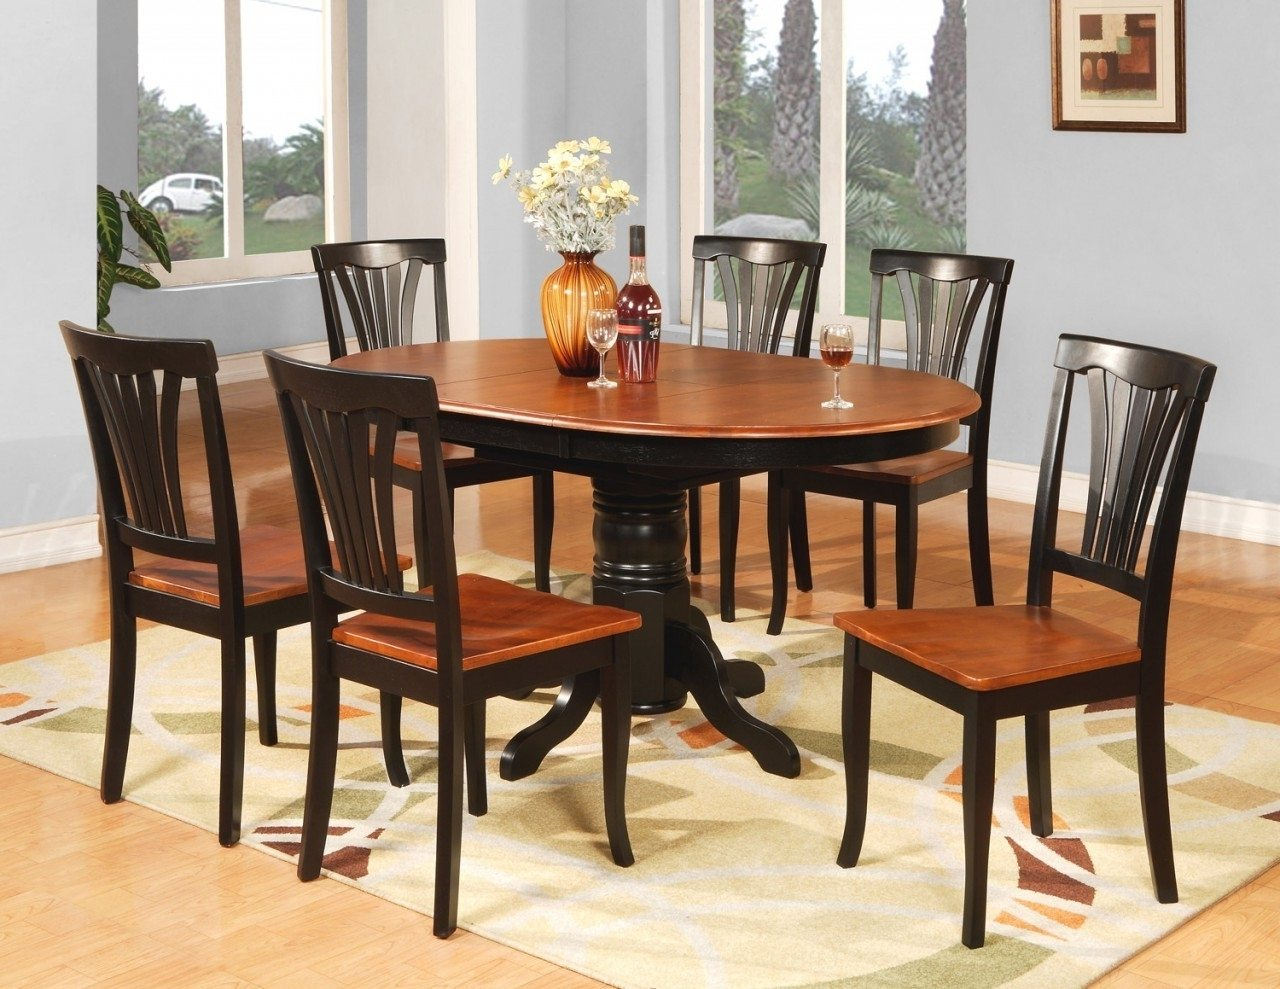 Cheap Dining Room Tables & Chairs – How to Bargain for ...